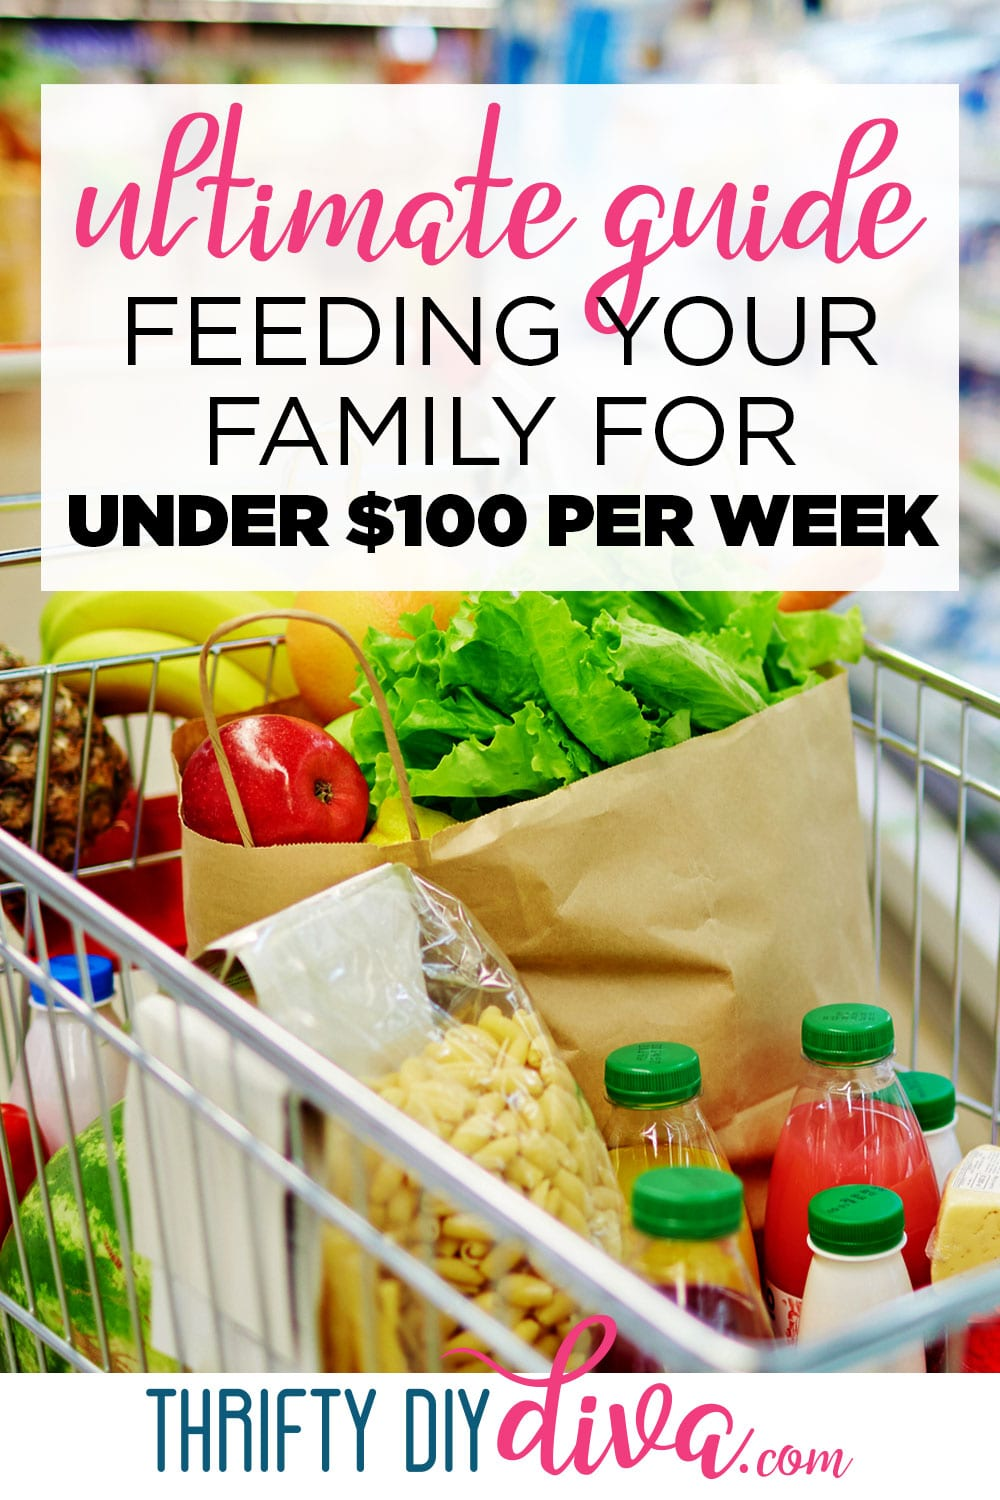 The Ultimate Guide to Feeding Your Family for Under $100 Per Week